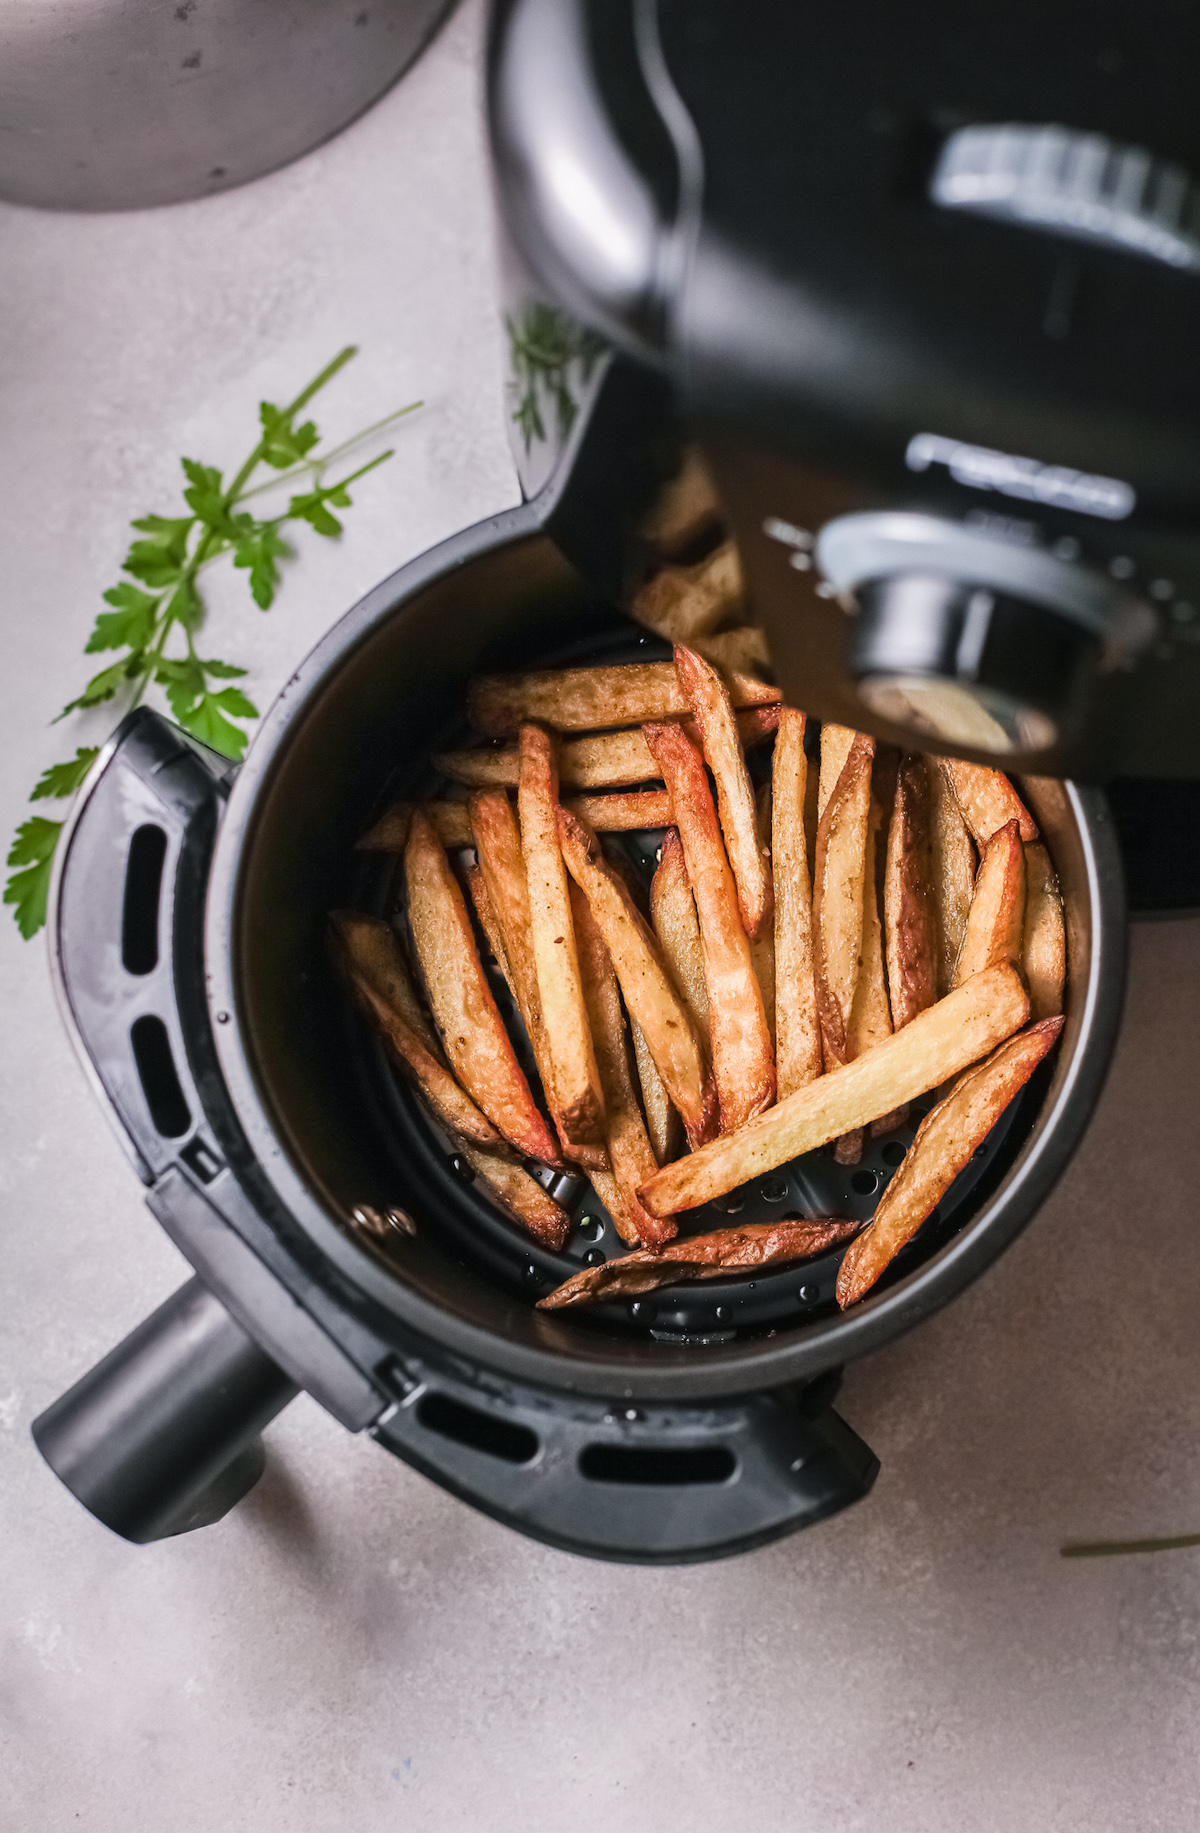 top down view of the cooked fries inside the air fryer basket